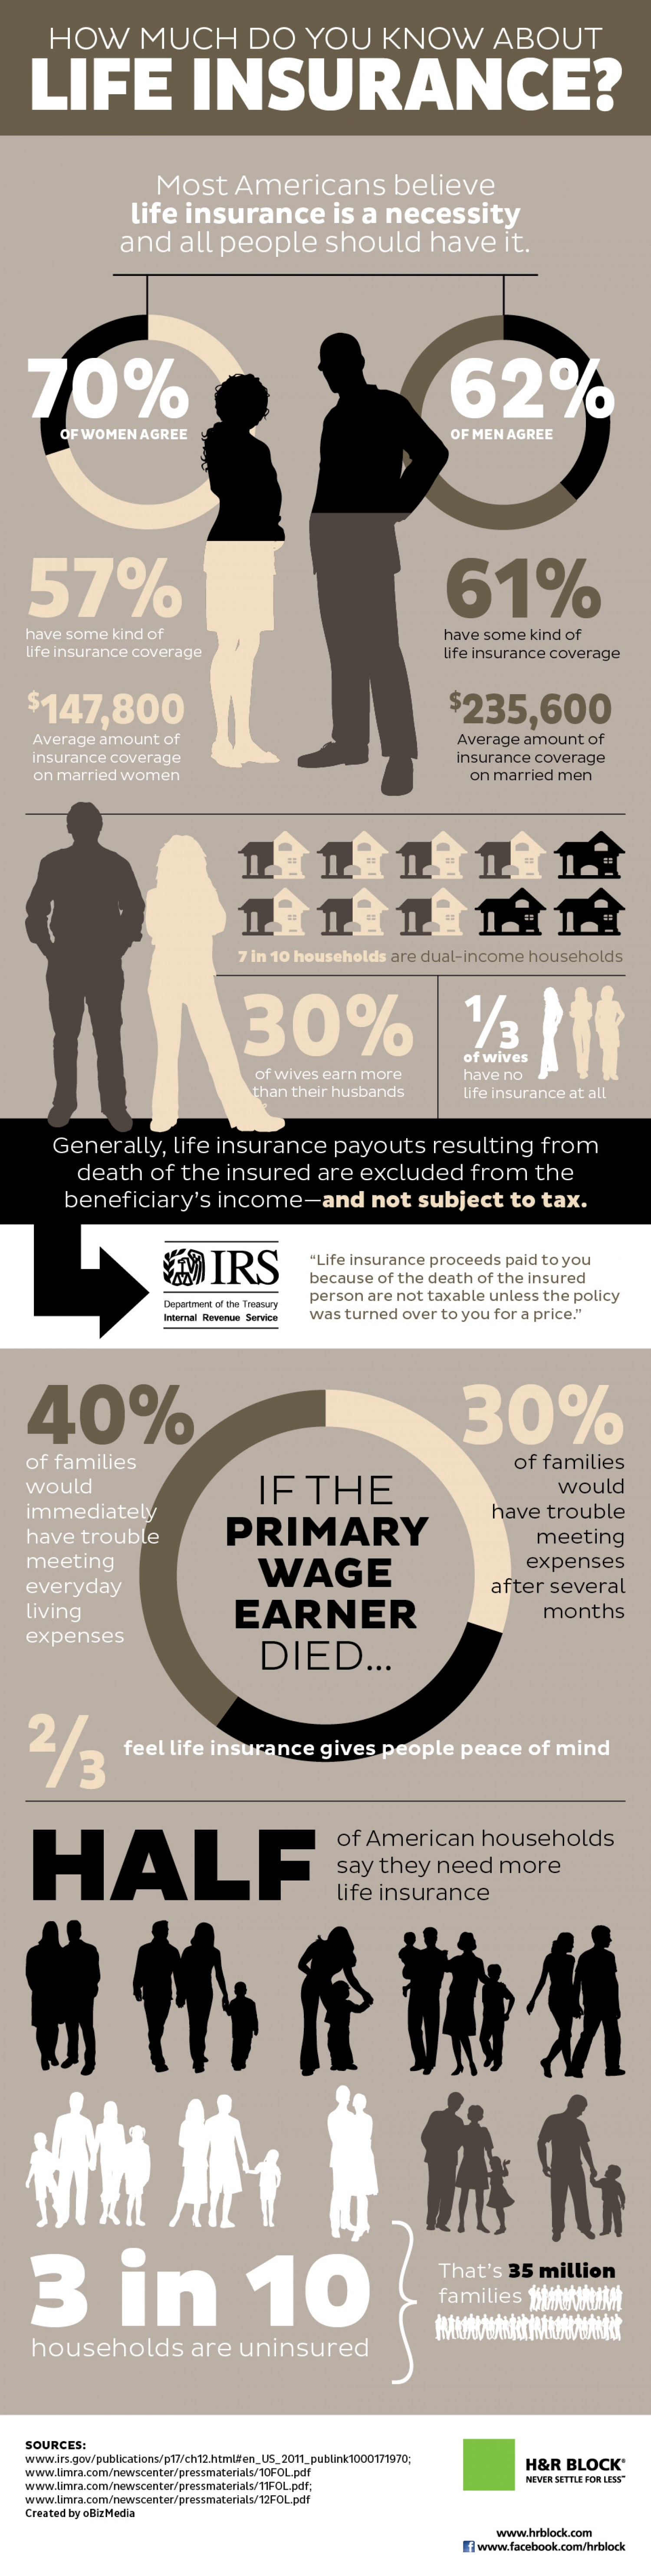 How Much Do You Know About Life Insurance?